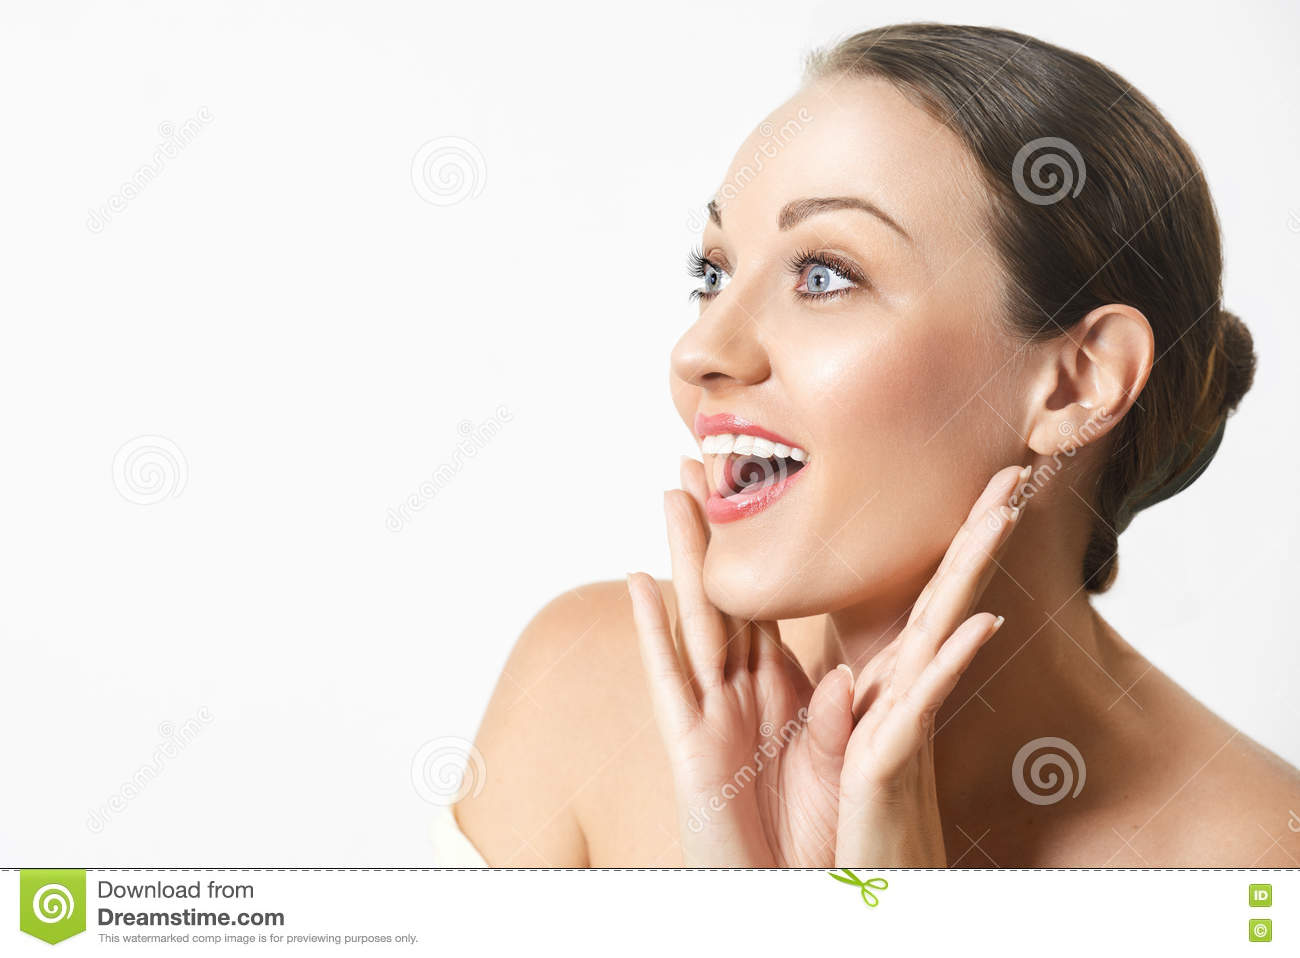 Surprised happy young woman looking sideways in excitement.